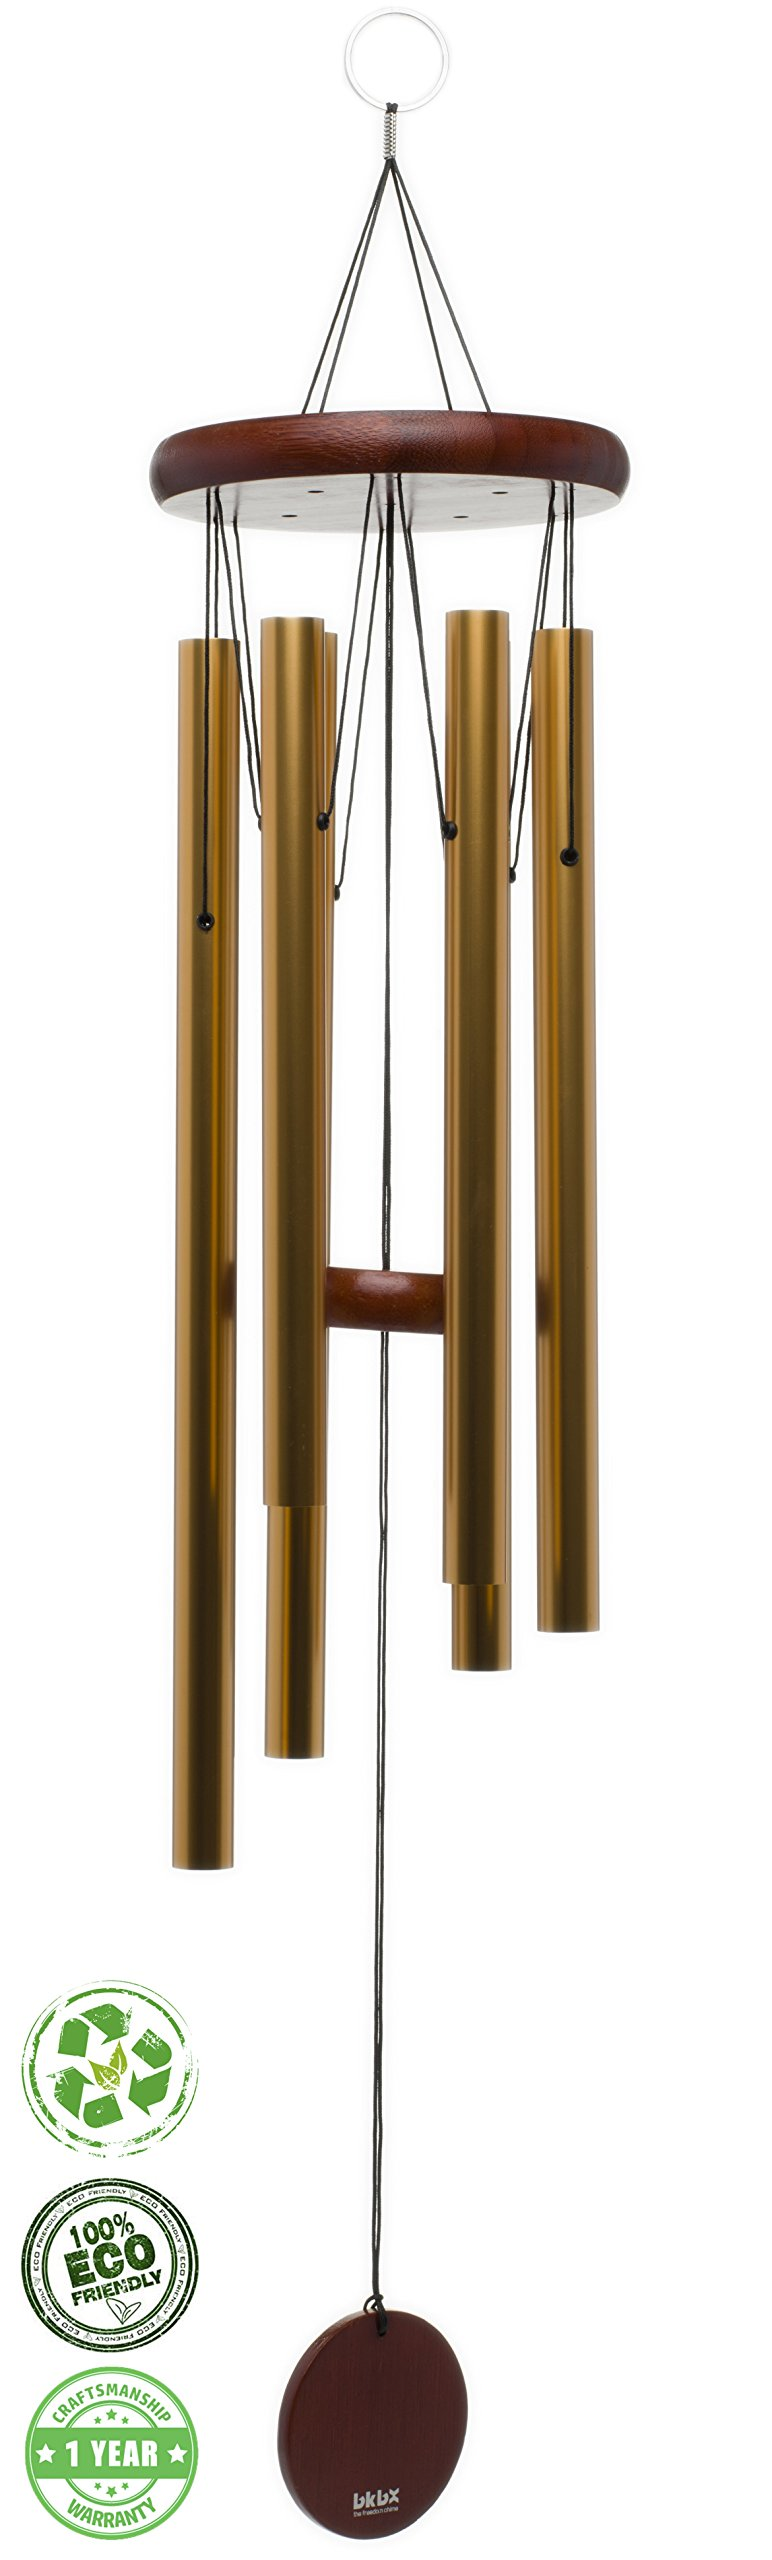 Brooklyn Basix Freedom Chime for Patio, Garden, Terrace and Balcony - Beautiful Outdoor Decor - Easy to Install Wind Chimes - Durable and Hand Tuned (Cherry/Gold, Medium 29'')